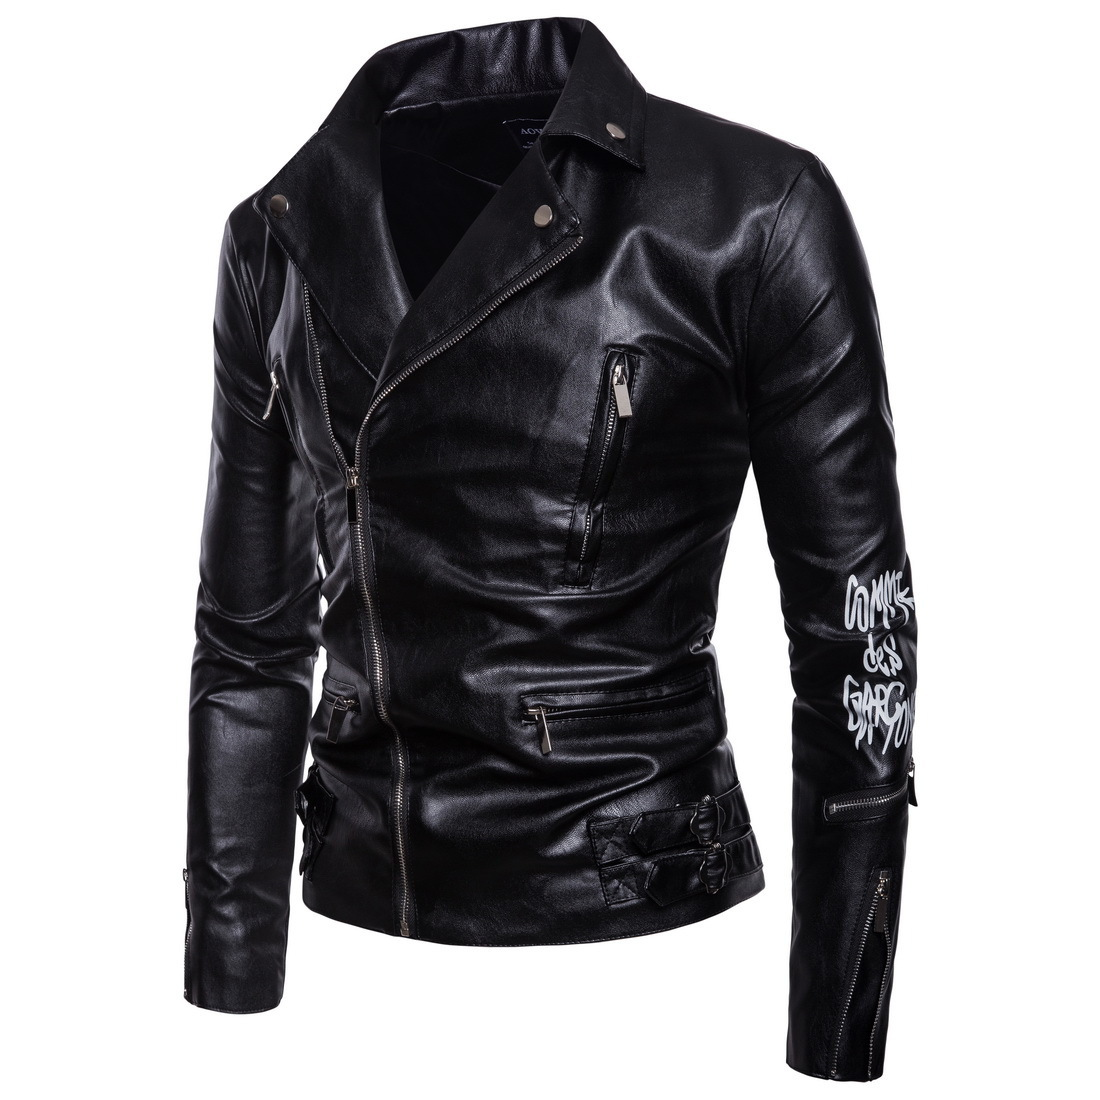 European 2019 Leather jaket men Motorcycle Bomber Dora Chain Printing Clothing  Slim fit Male  PUNK Halley Leather Jacket Coat